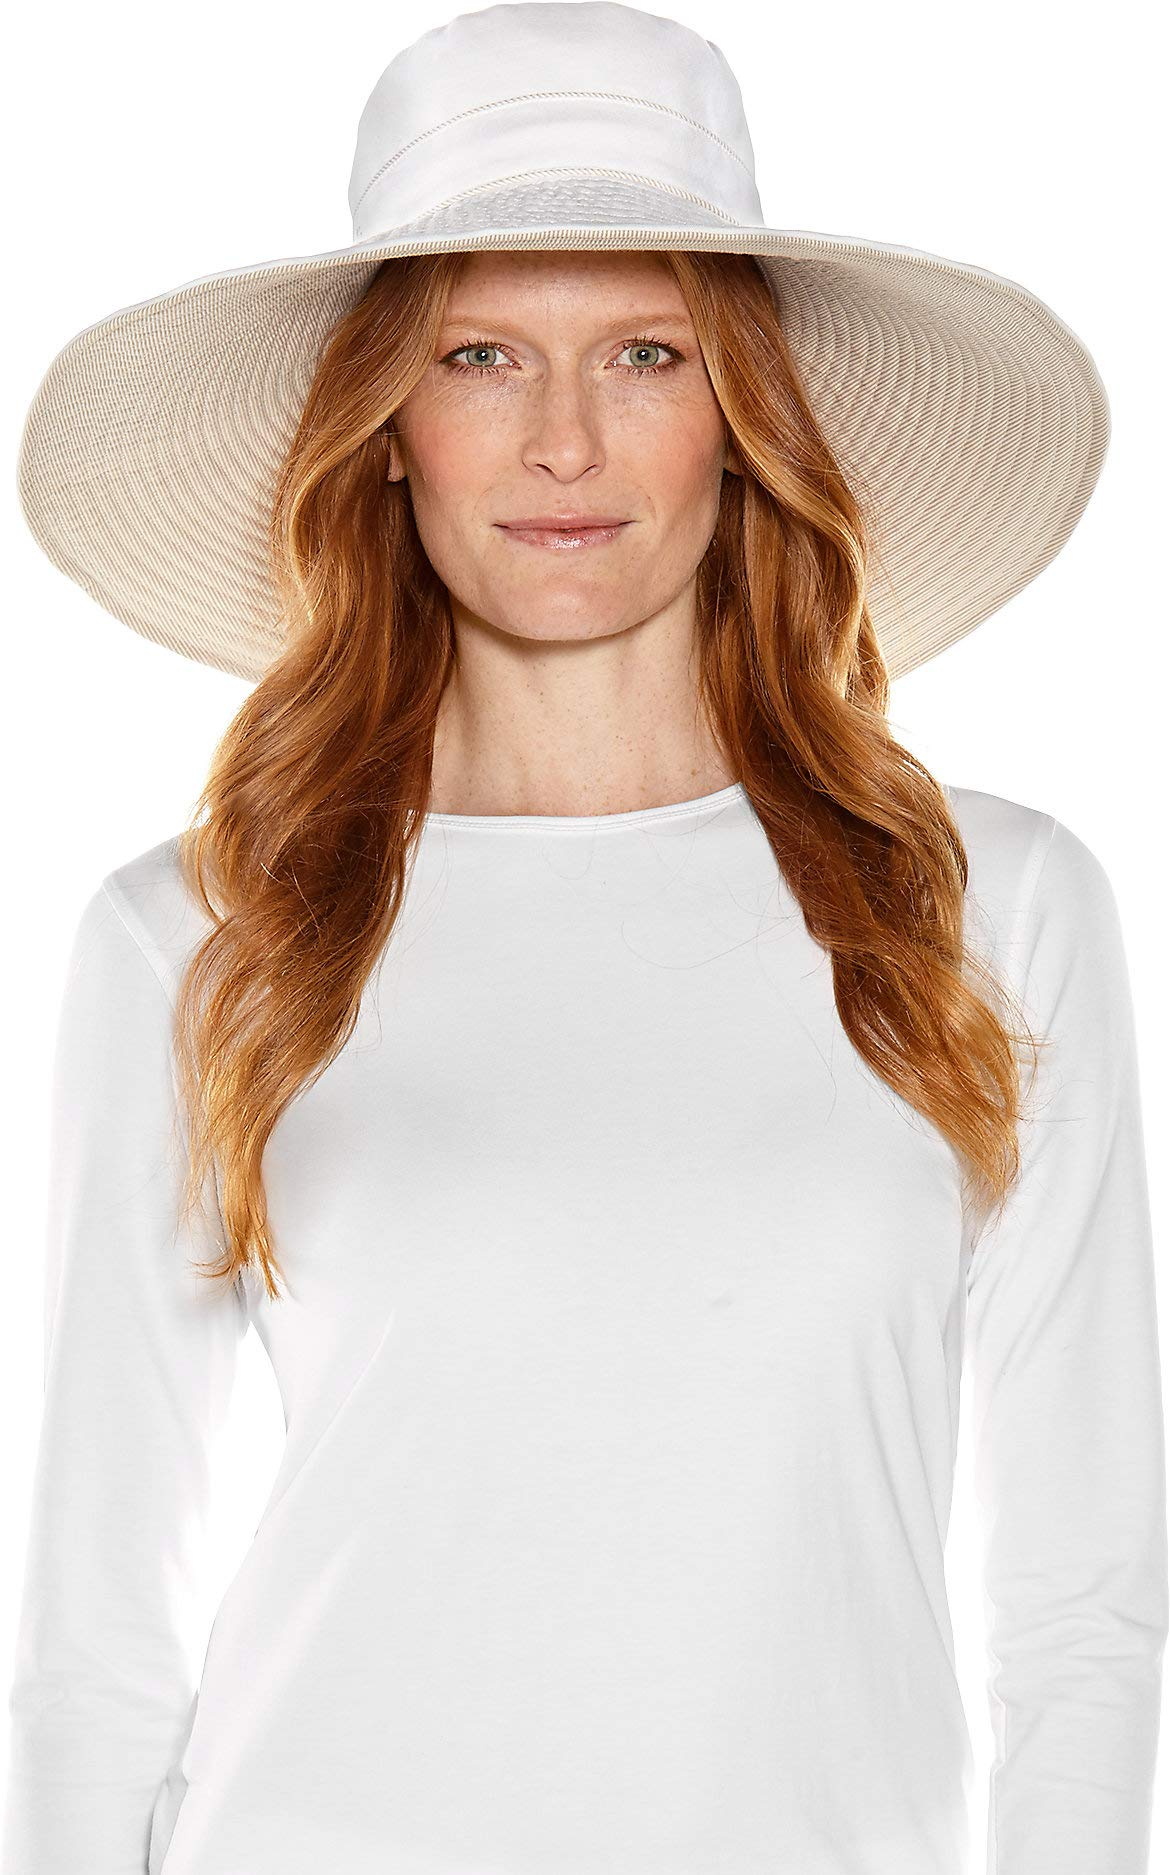 Coolibar UPF 50+ Women's Reversible Beach Hat - Sun Protective (One Size- White)